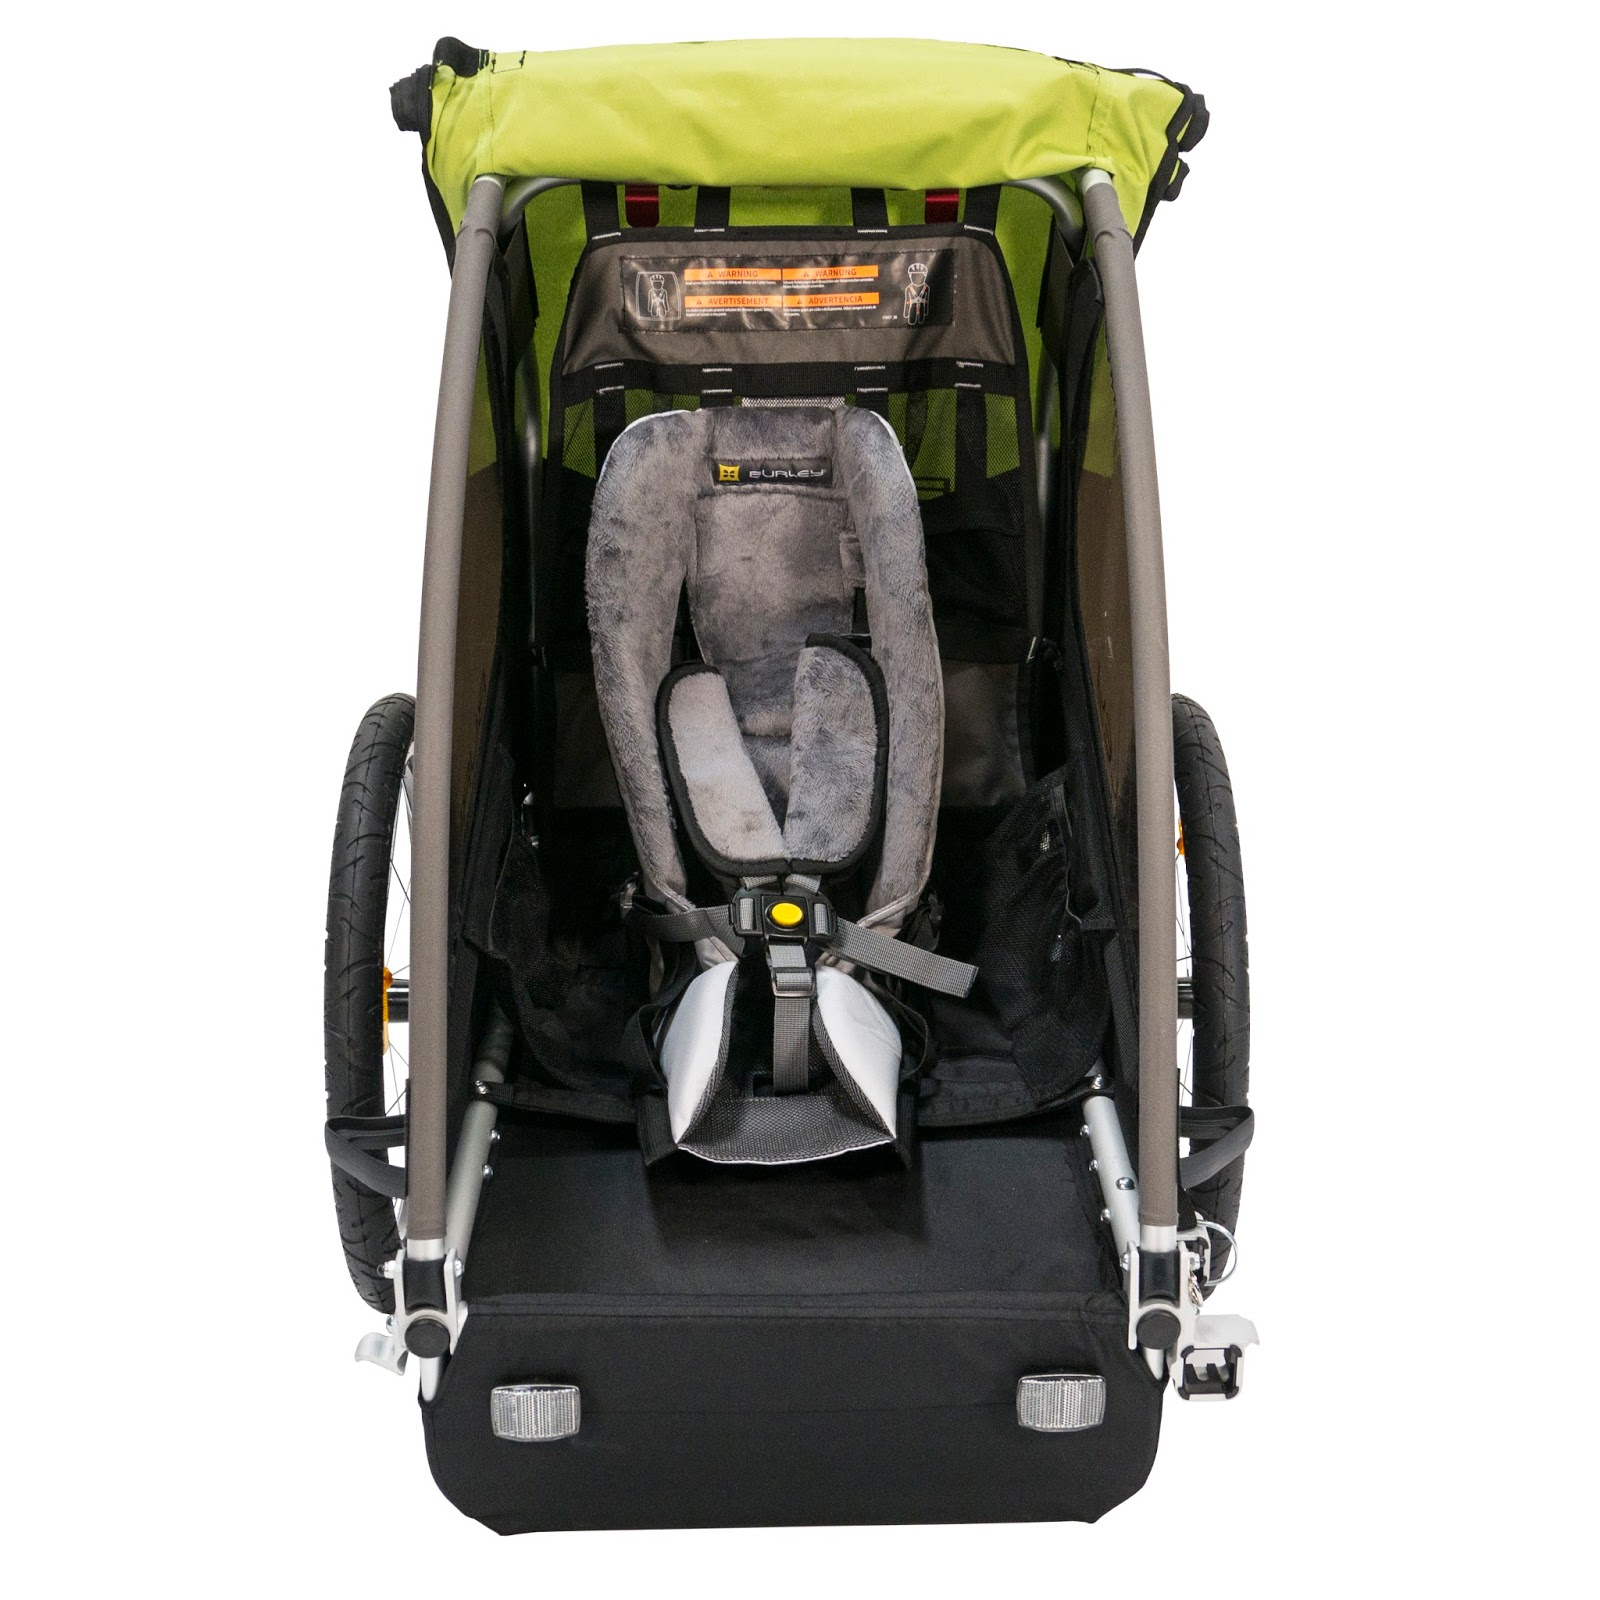 Minnow  The New Single Seat Bike Trailer from Burley